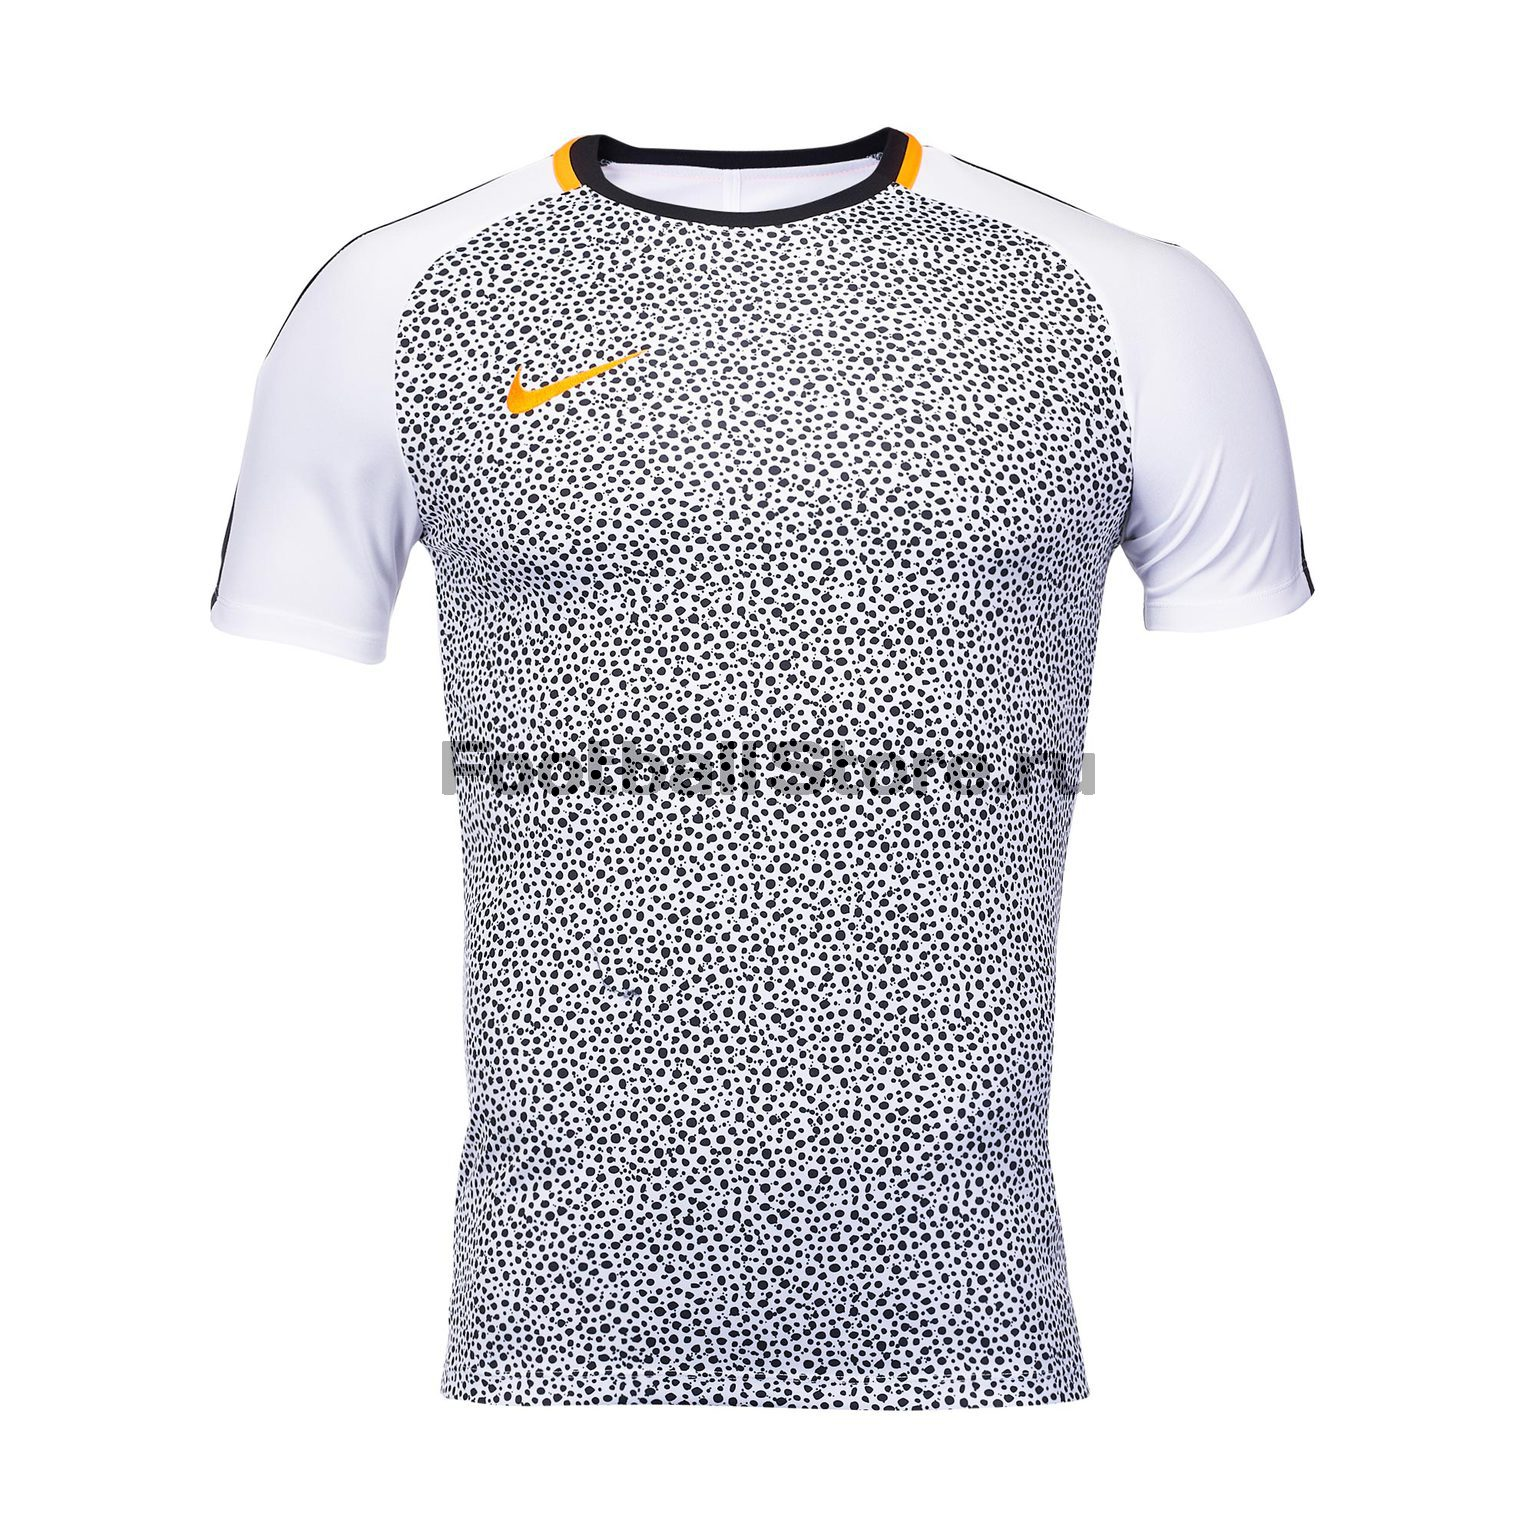 Футболка тренировочная Nike Academy Top SS AJ4231-100 nike vapor pro low d men s detachable football cleats